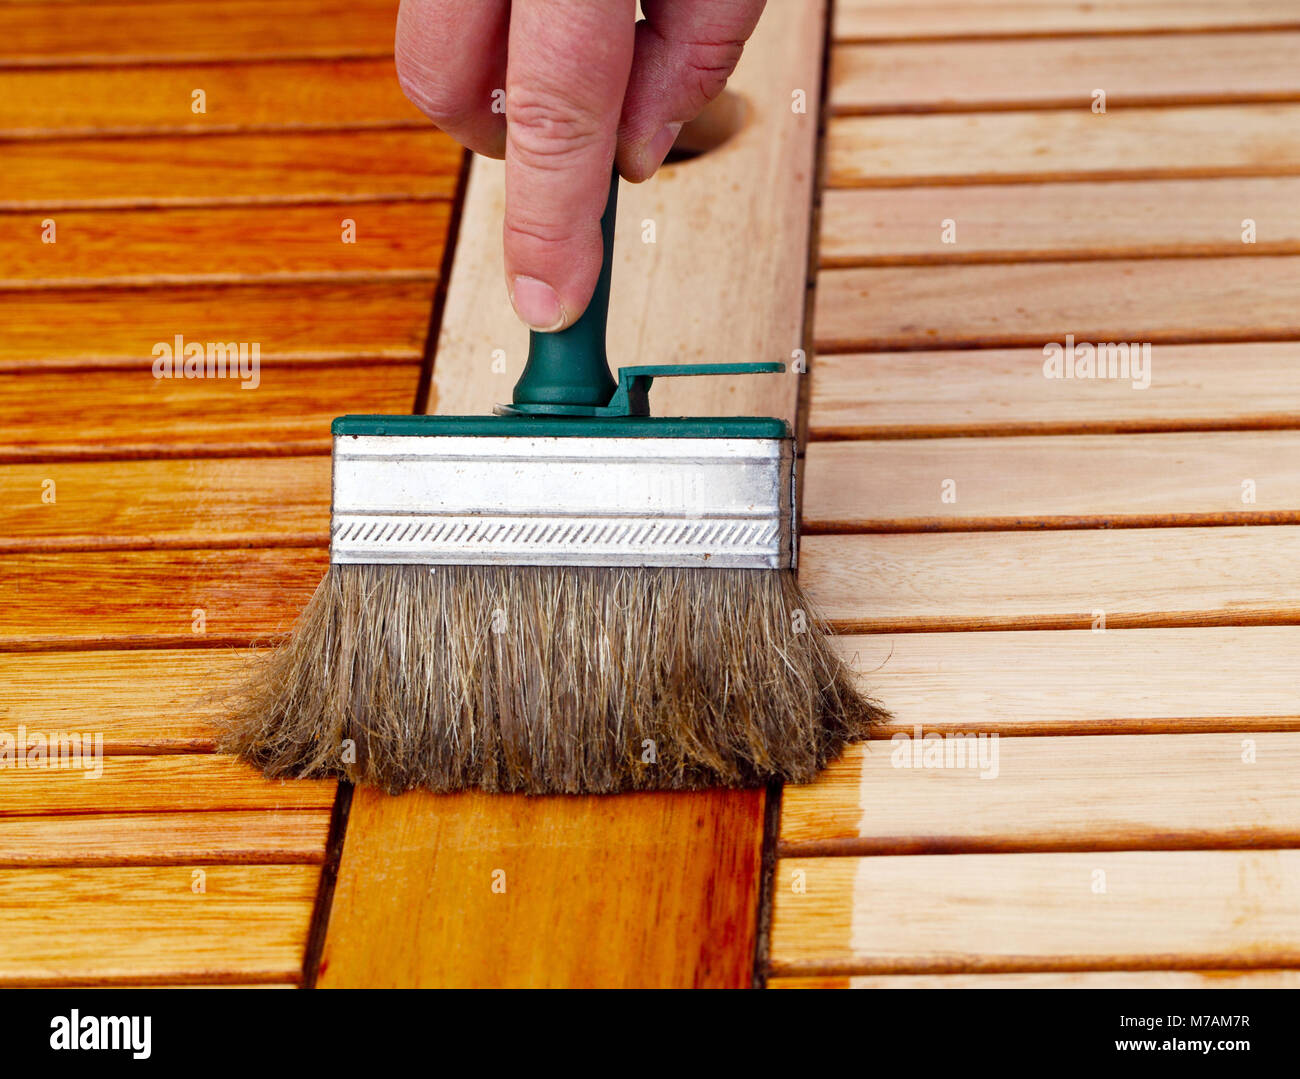 Applying polish to wooden table - Stock Image